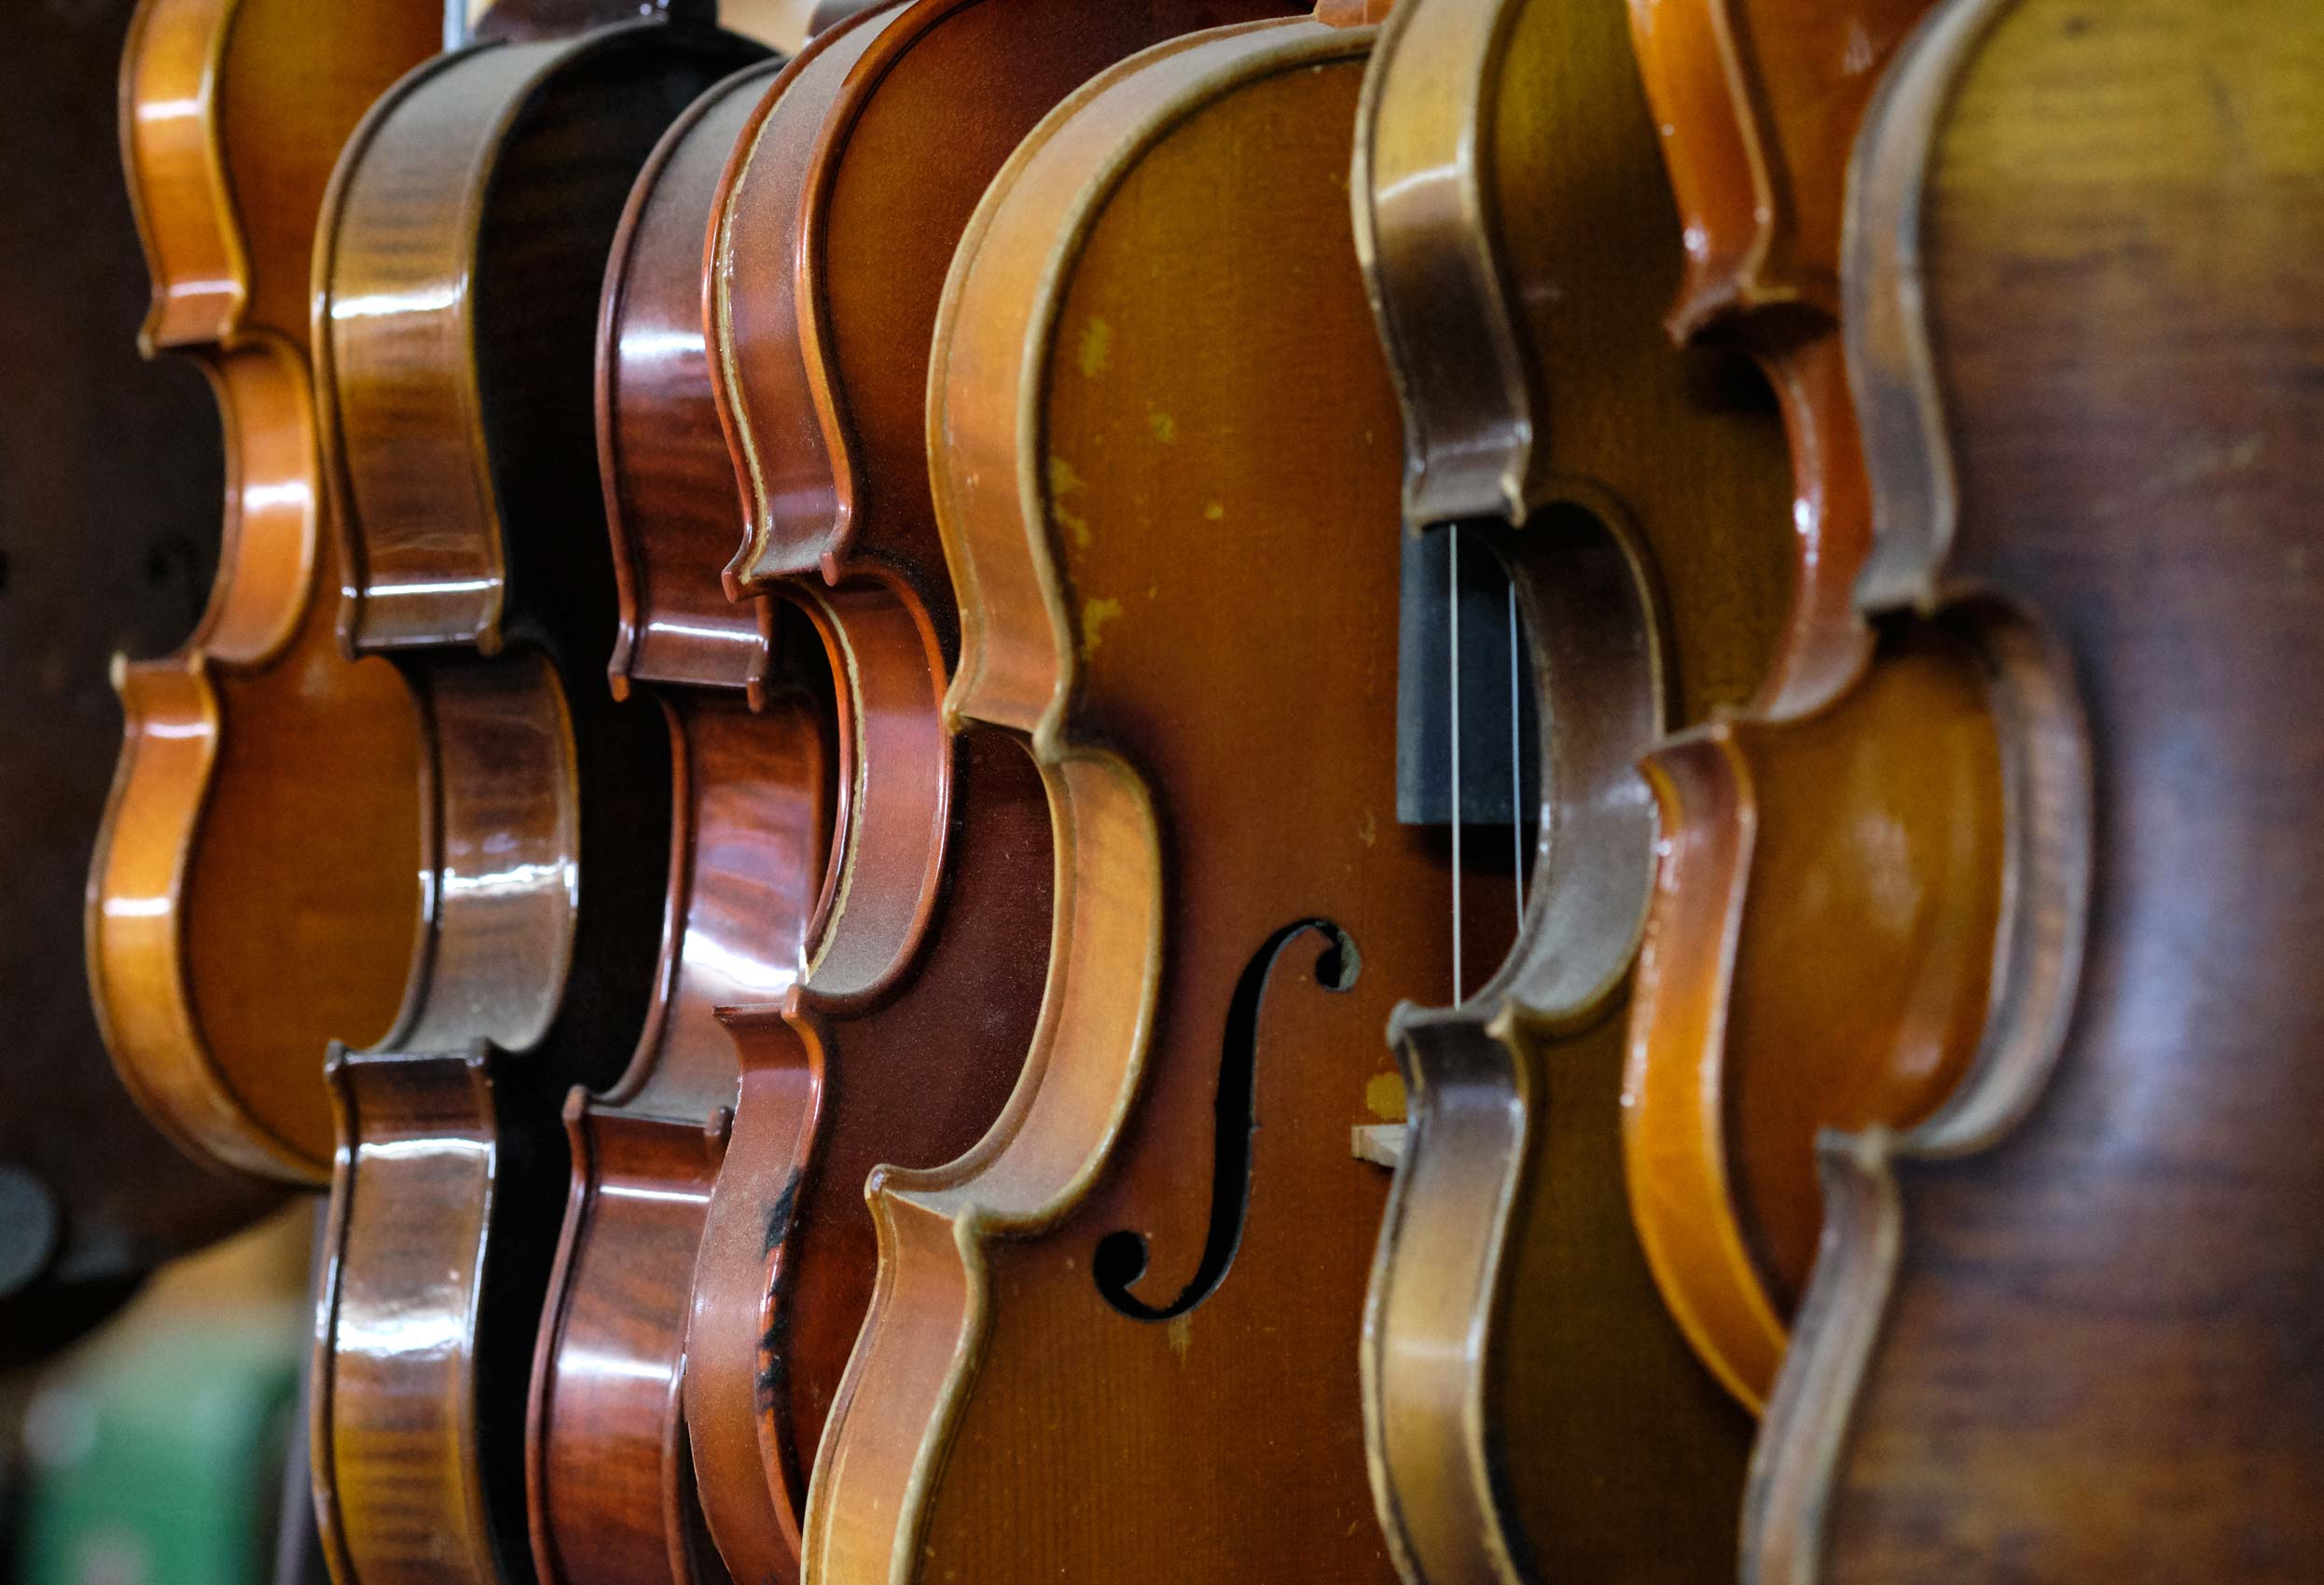 Stringed Instruments Waiting to be Fixed